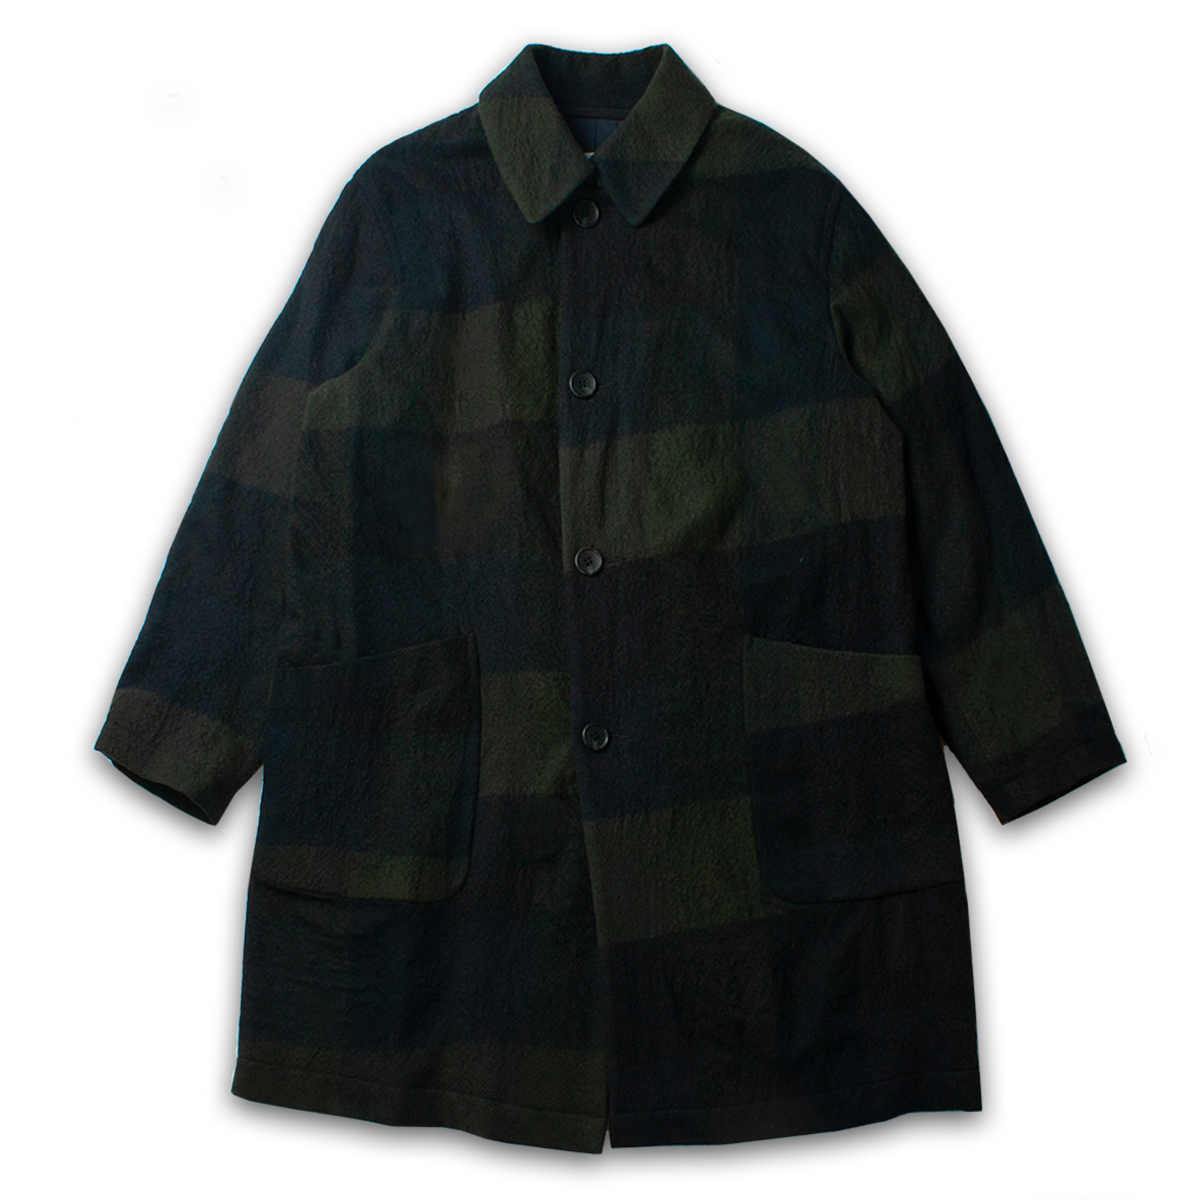 [SAGE DE CRET ] CHECK WOOL COAT 'CHECK'